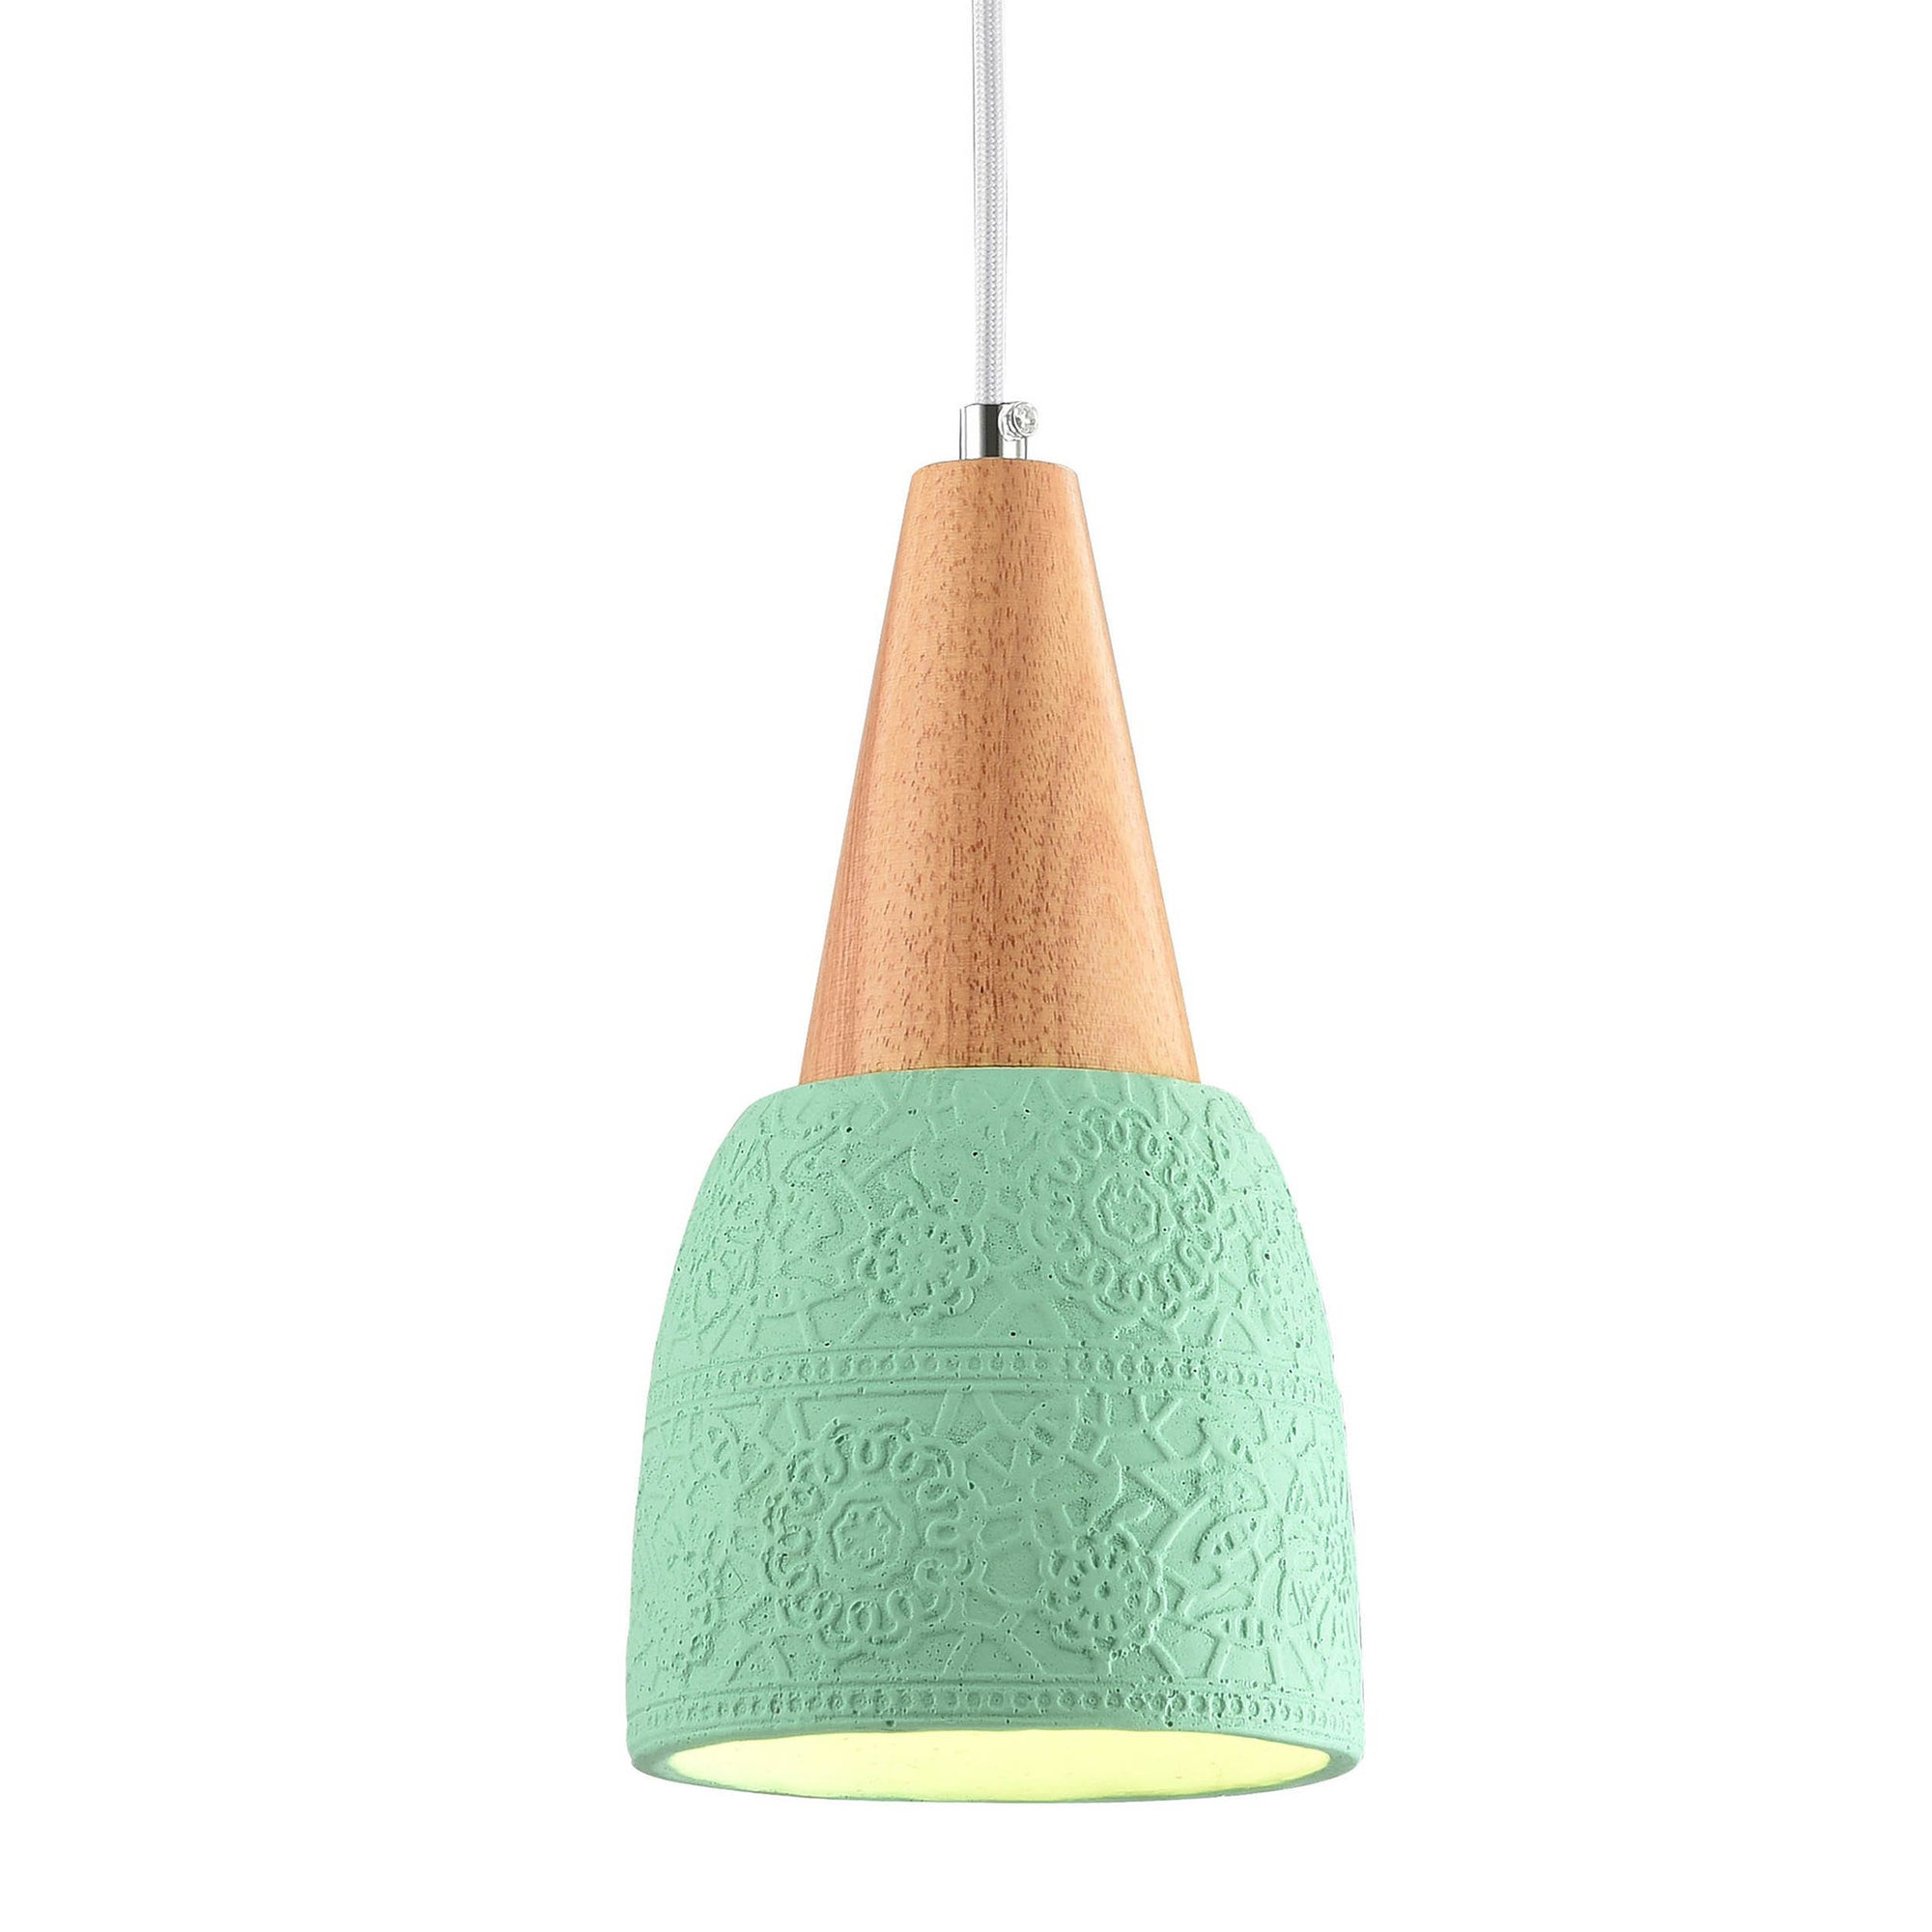 Pendant Lamp - Concrete And Wood  Lamp F4550/1G